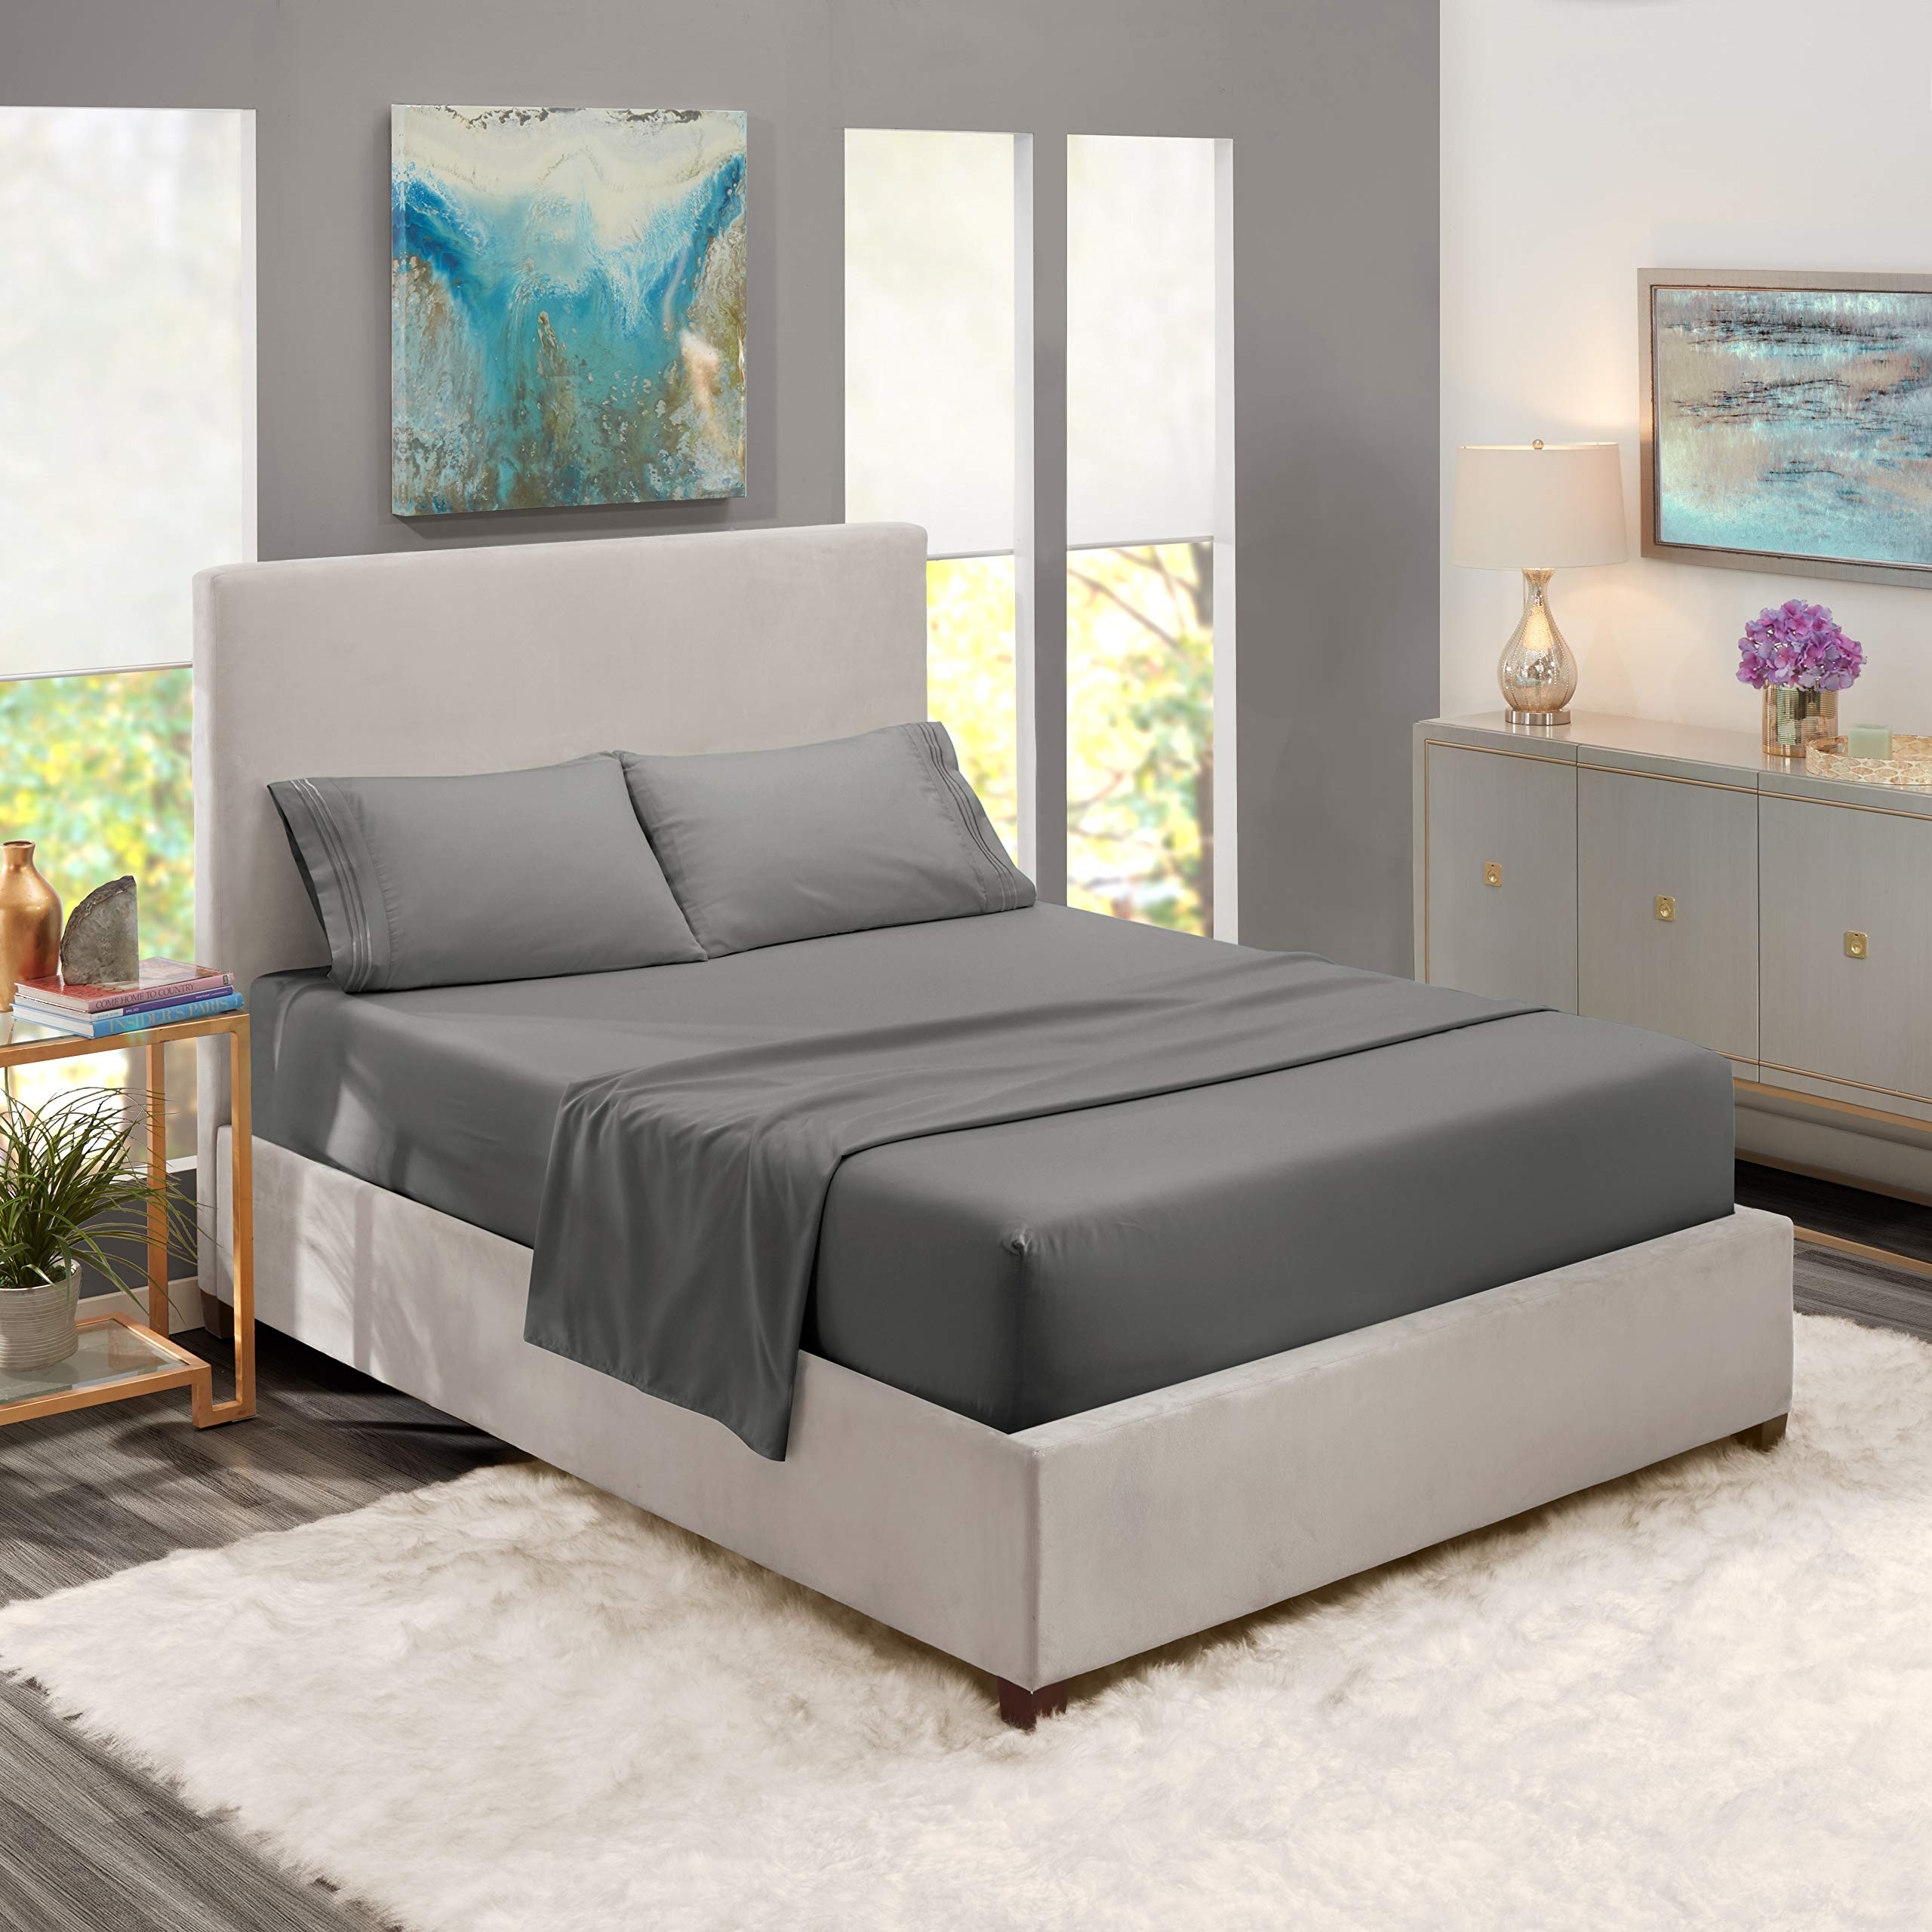 Queen Size Sheets Microfiber Charcoal